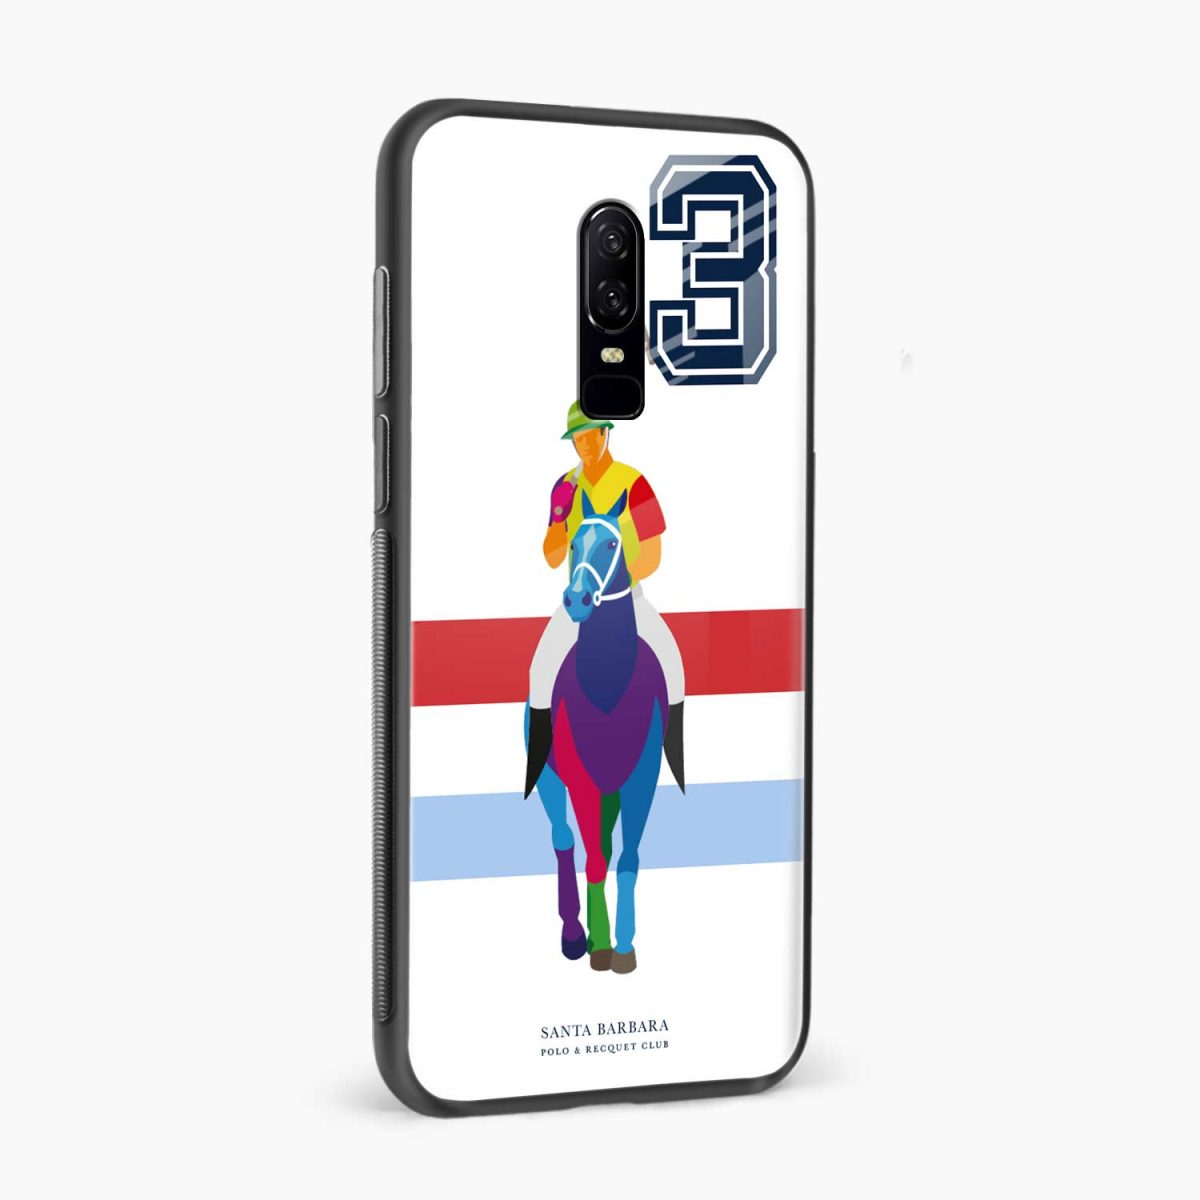 multicolor sant barbara polo side view oneplus 6 back cover